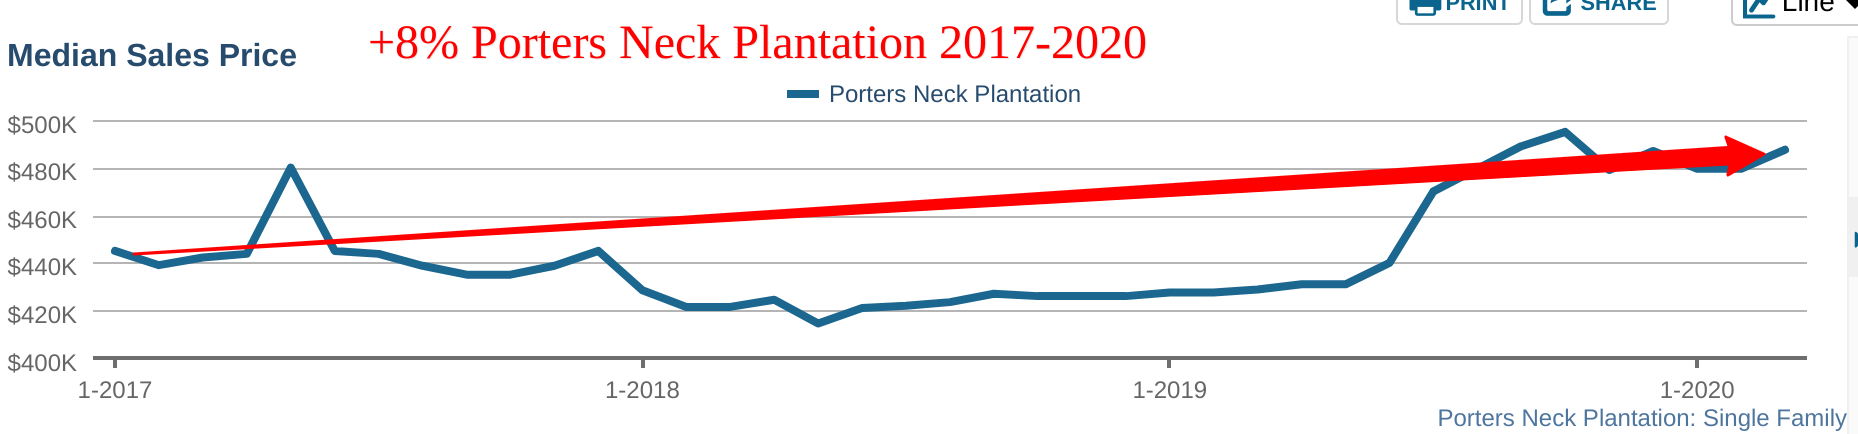 Porters Neck Plantation home prices 2020